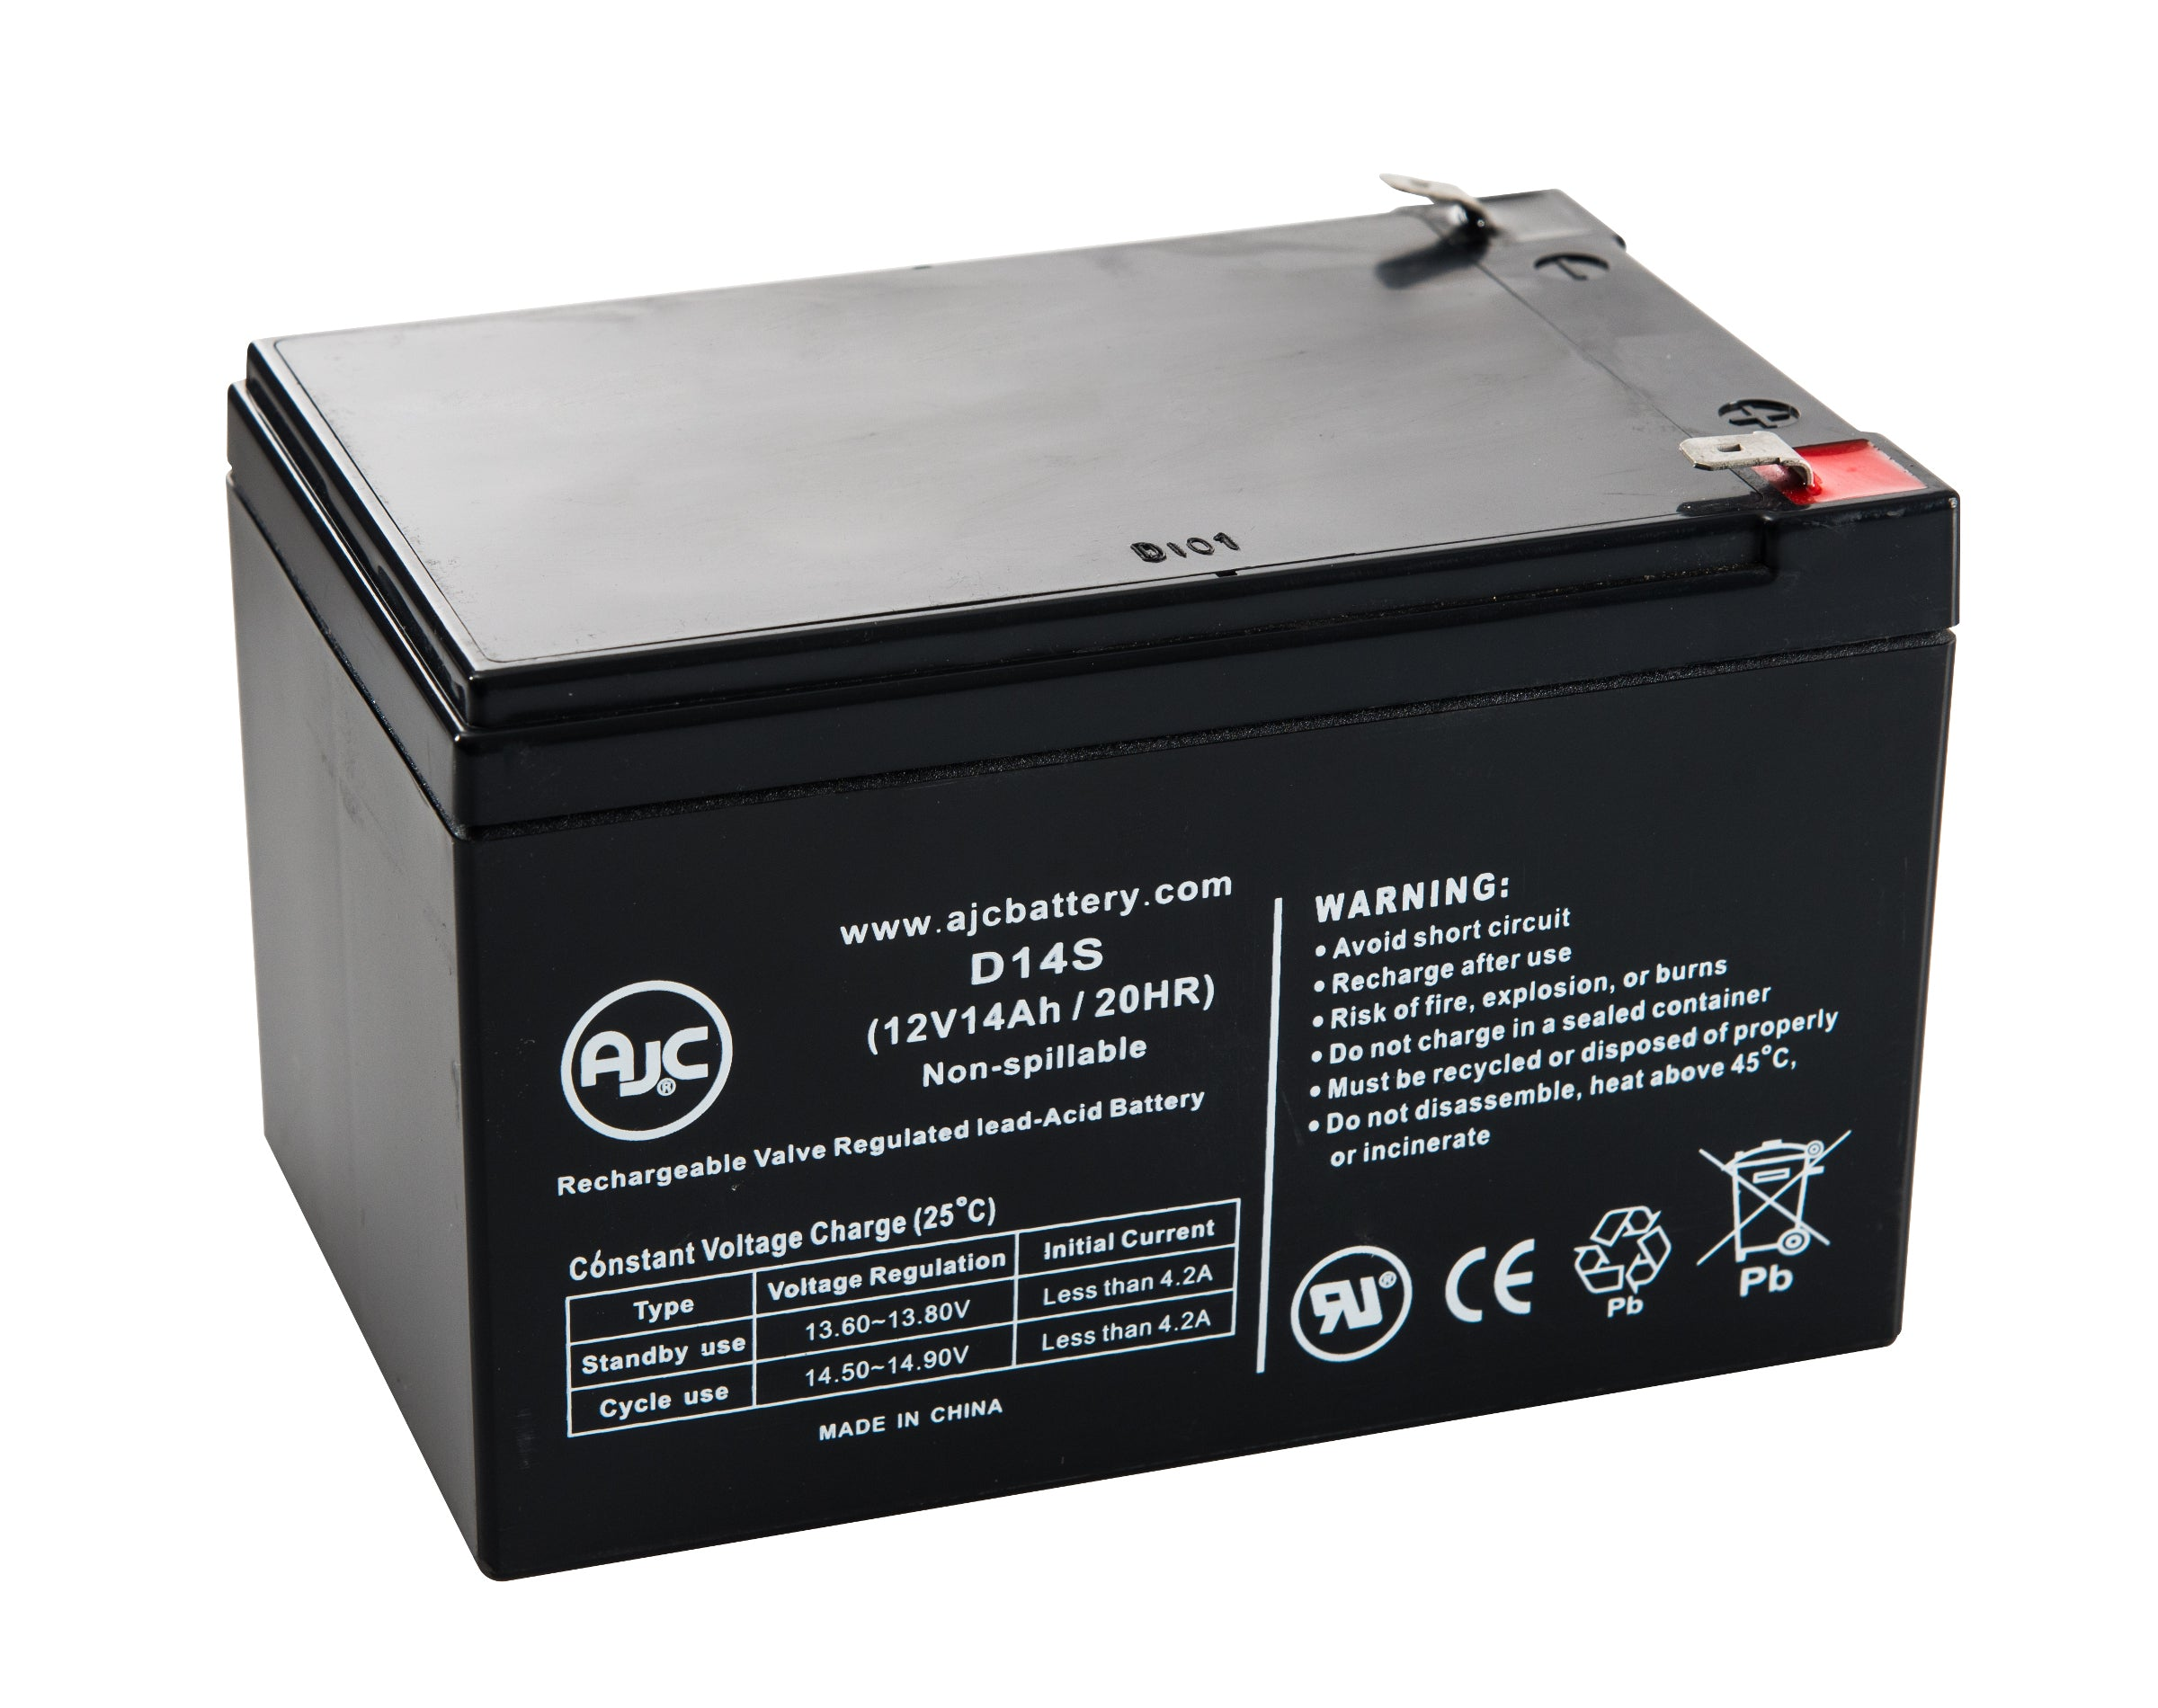 scooterteq 6fm14 12v 14ah scooter replacement battery. Black Bedroom Furniture Sets. Home Design Ideas